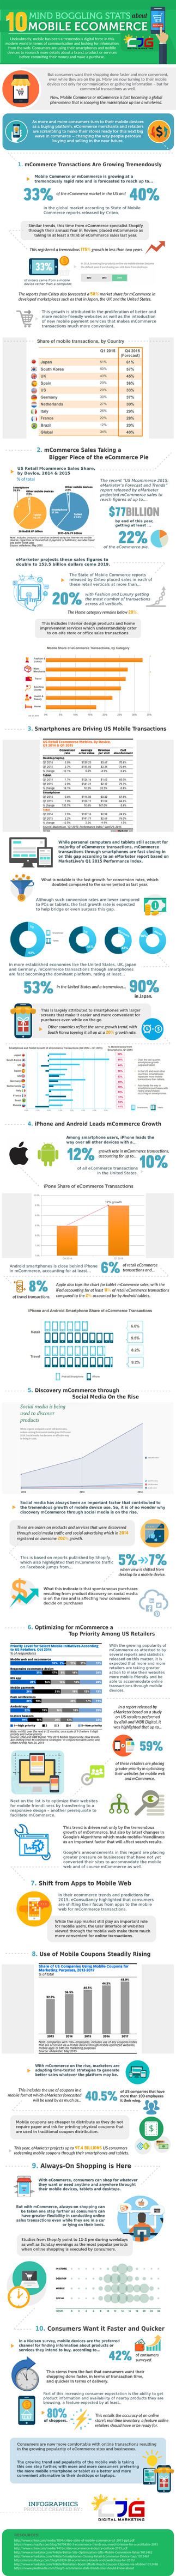 10 Mind Boggling Stats About Mobile Ecommerce (Infographic)